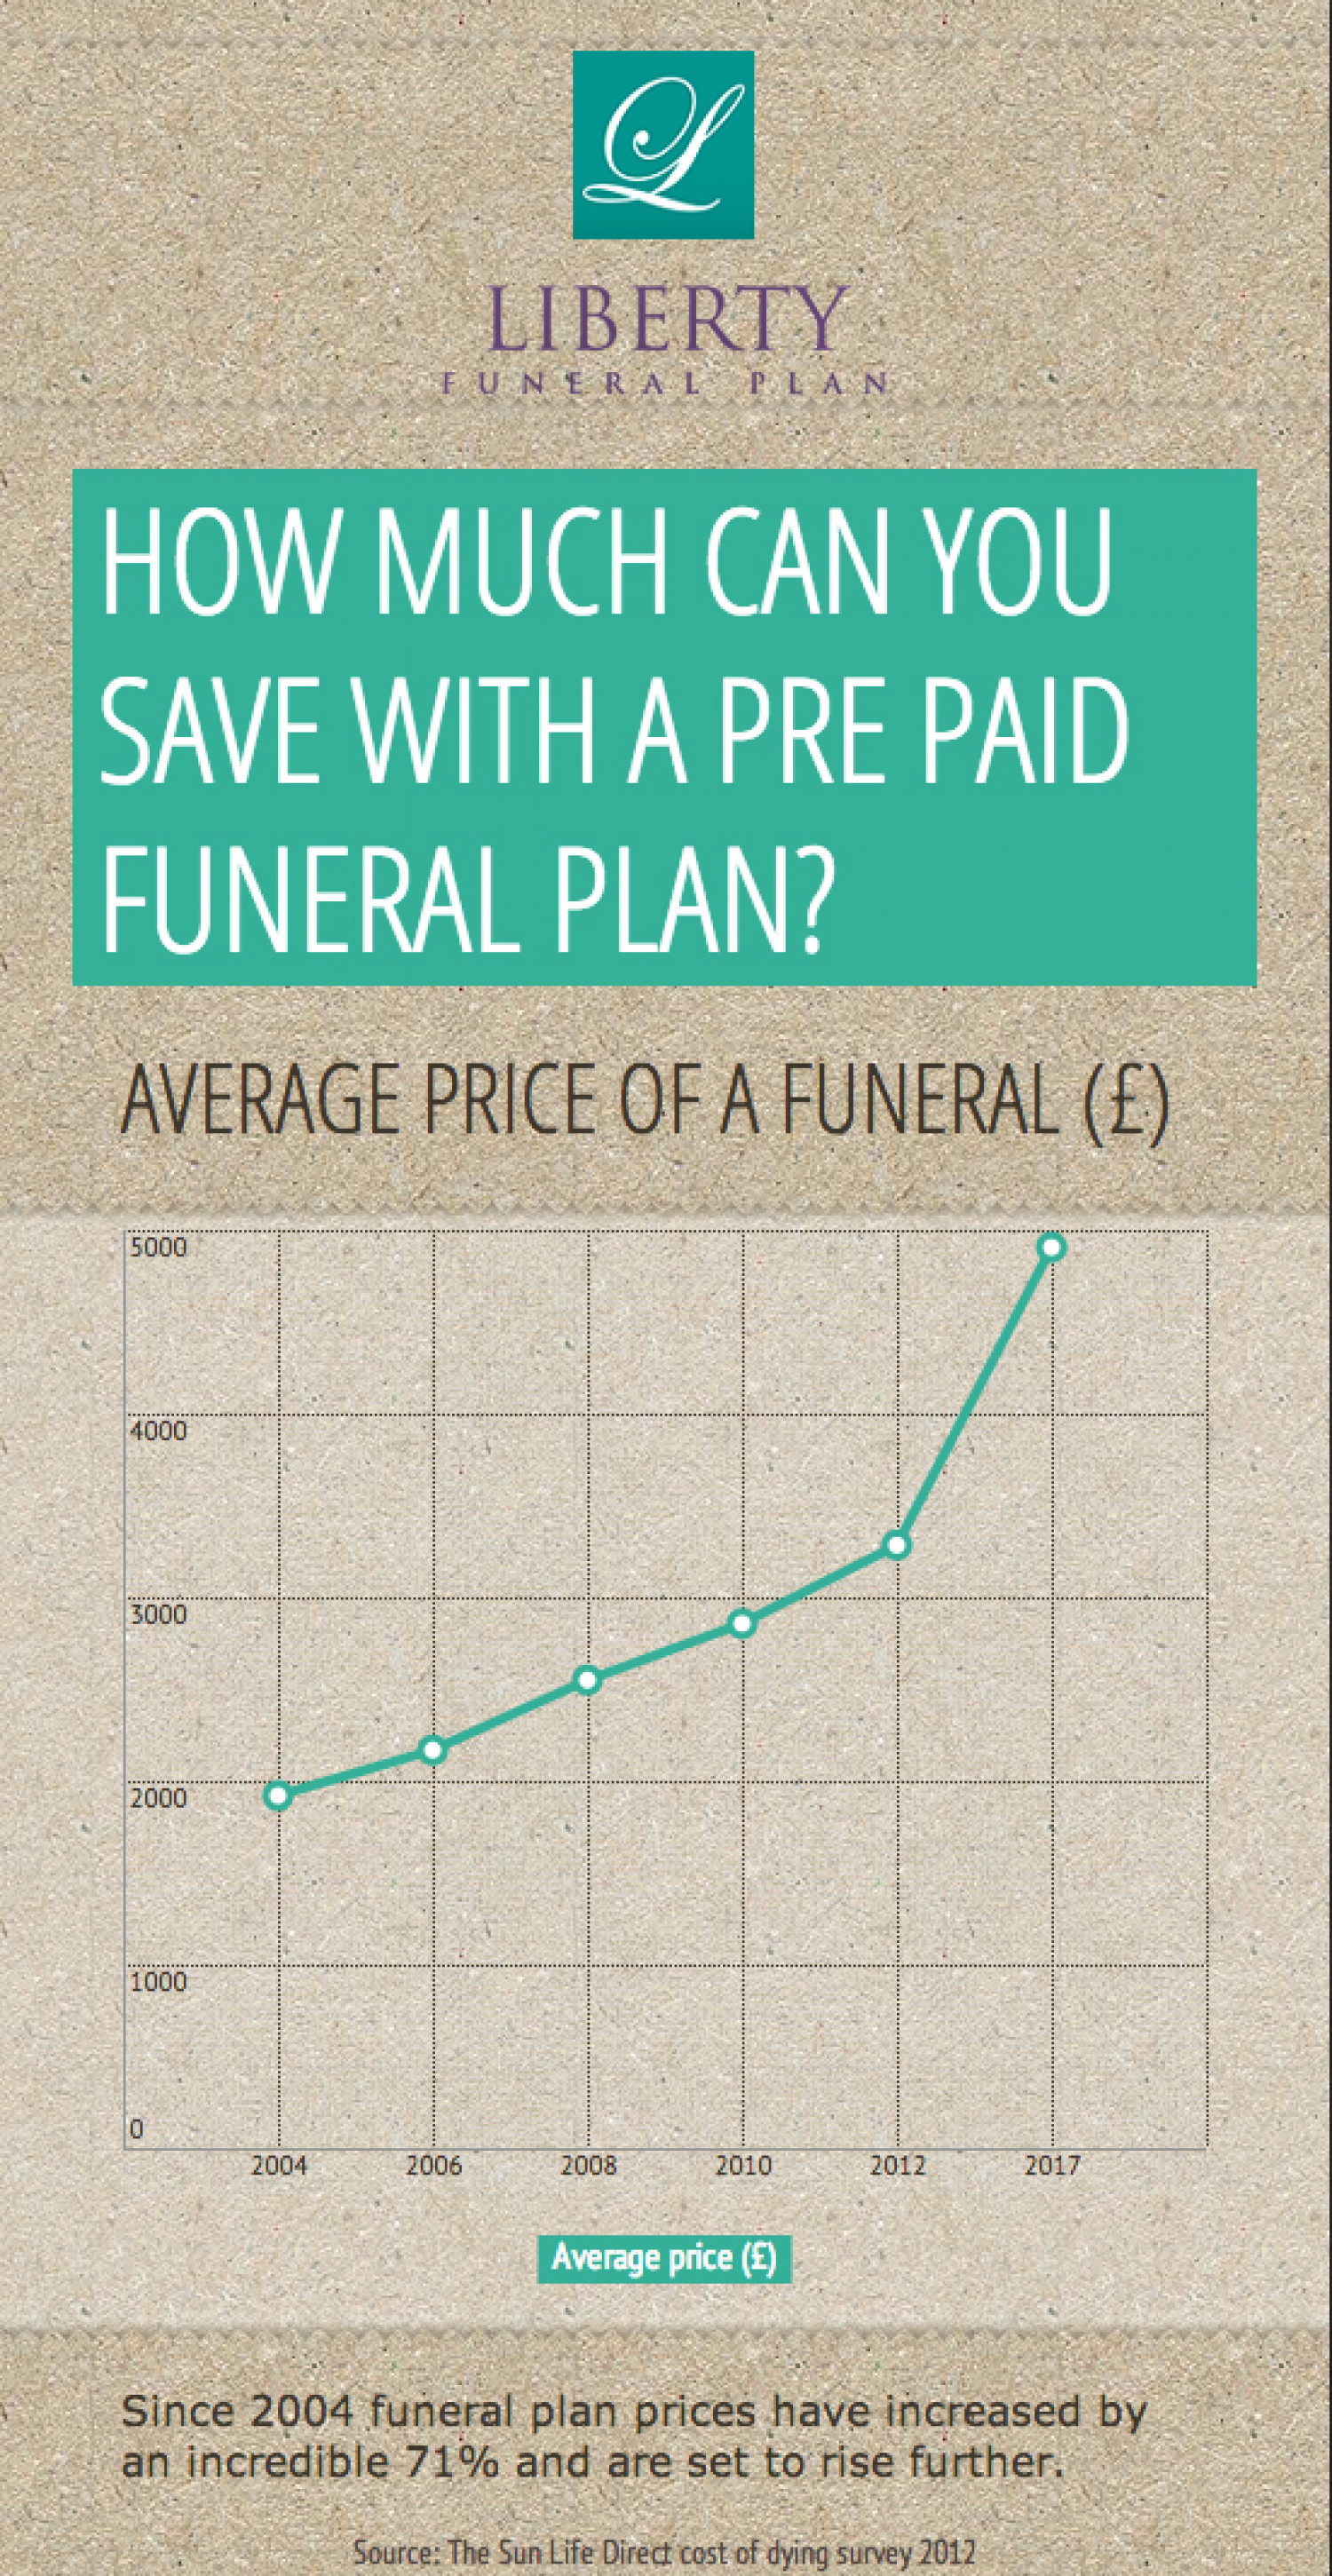 How much could you save with a pre paid funeral plan